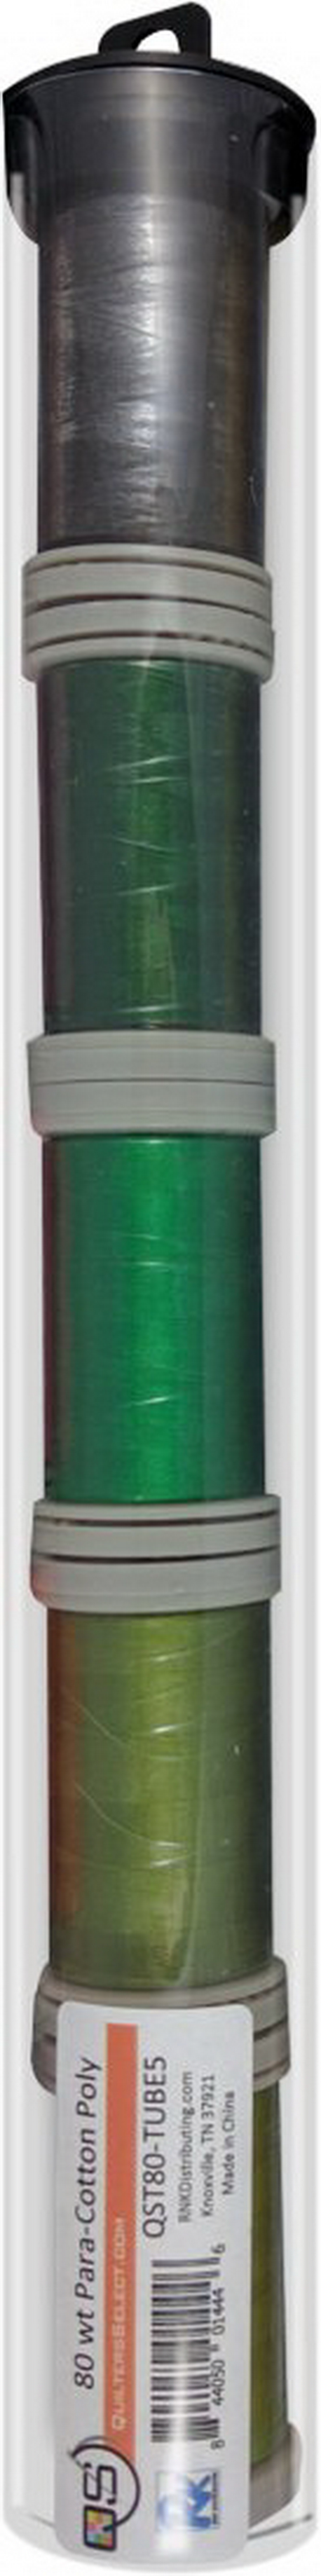 Quilters Select Para-Cotton Polyester Thread 80 Weight Tube Bundle 5